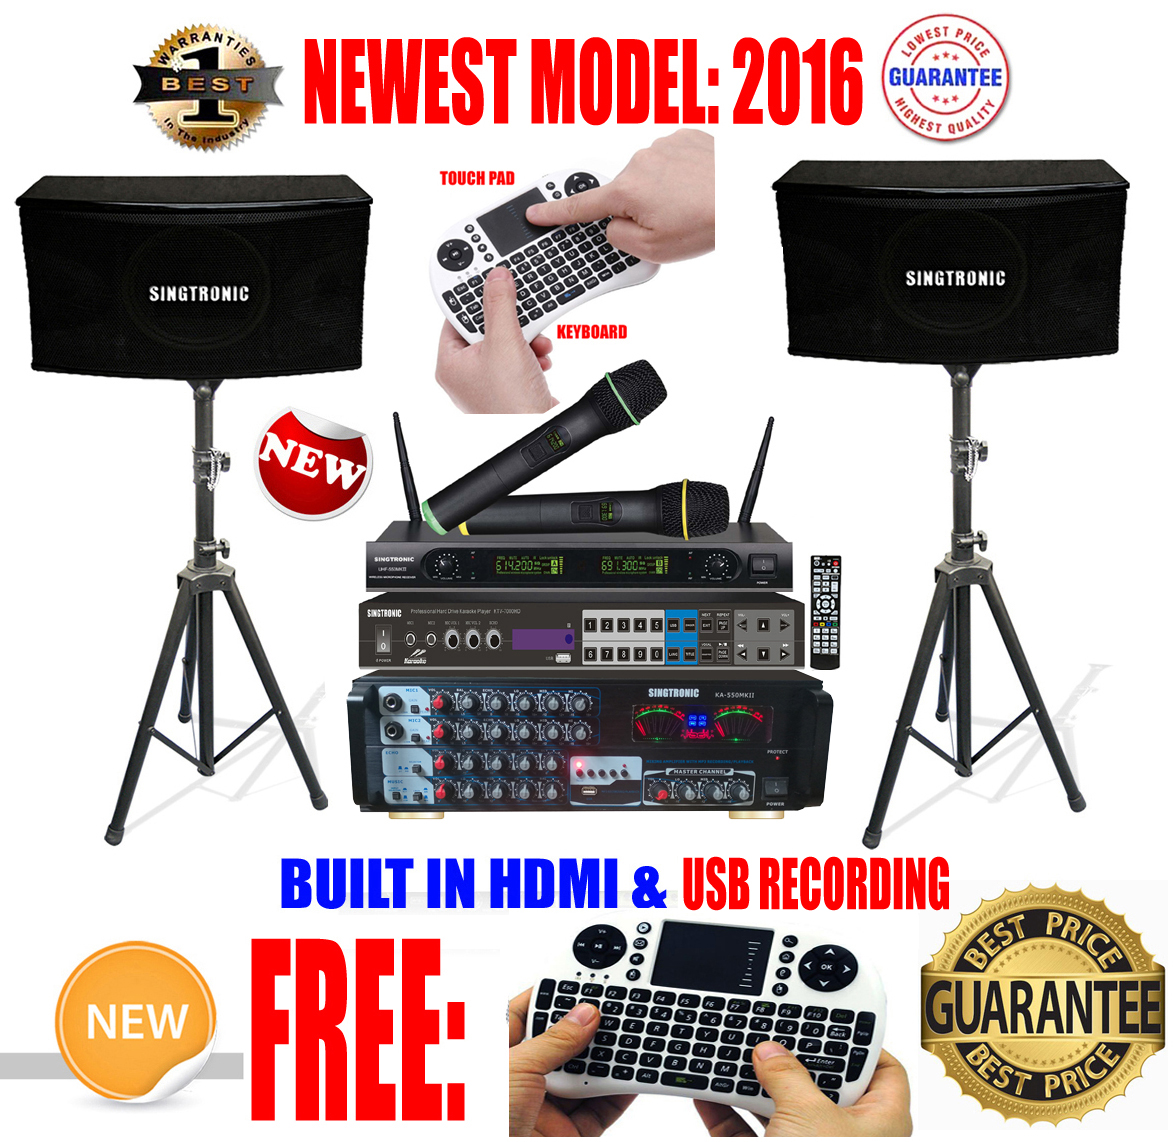 singtronic complete 1000w karaoke system package specials with 40 000 songs karaoke newest model. Black Bedroom Furniture Sets. Home Design Ideas